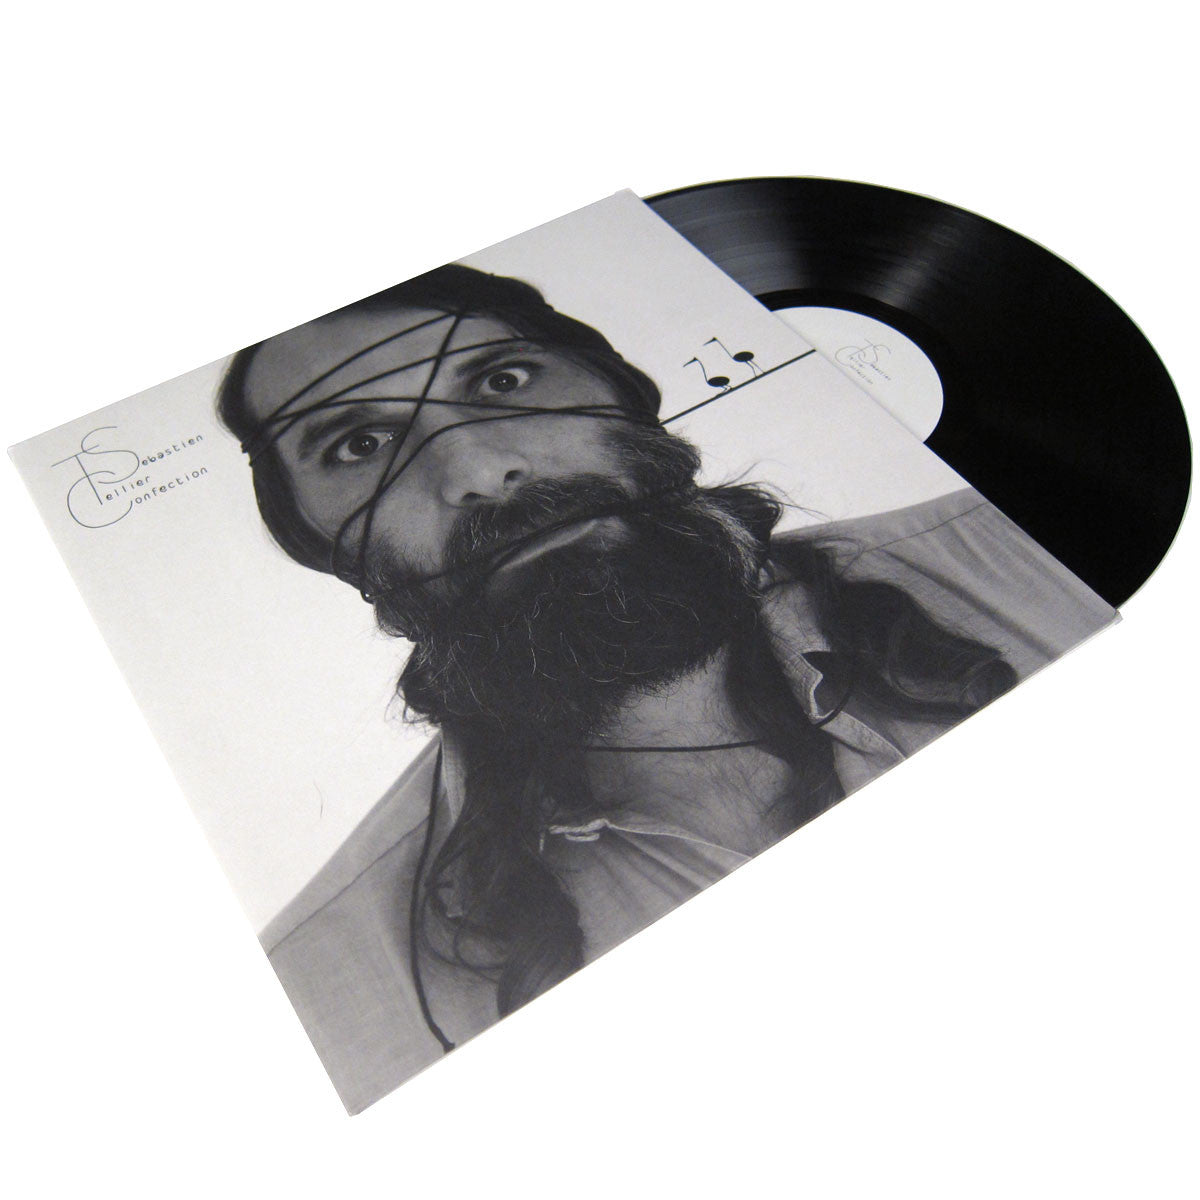 Sebastien Tellier: Confection (Free MP3) LP